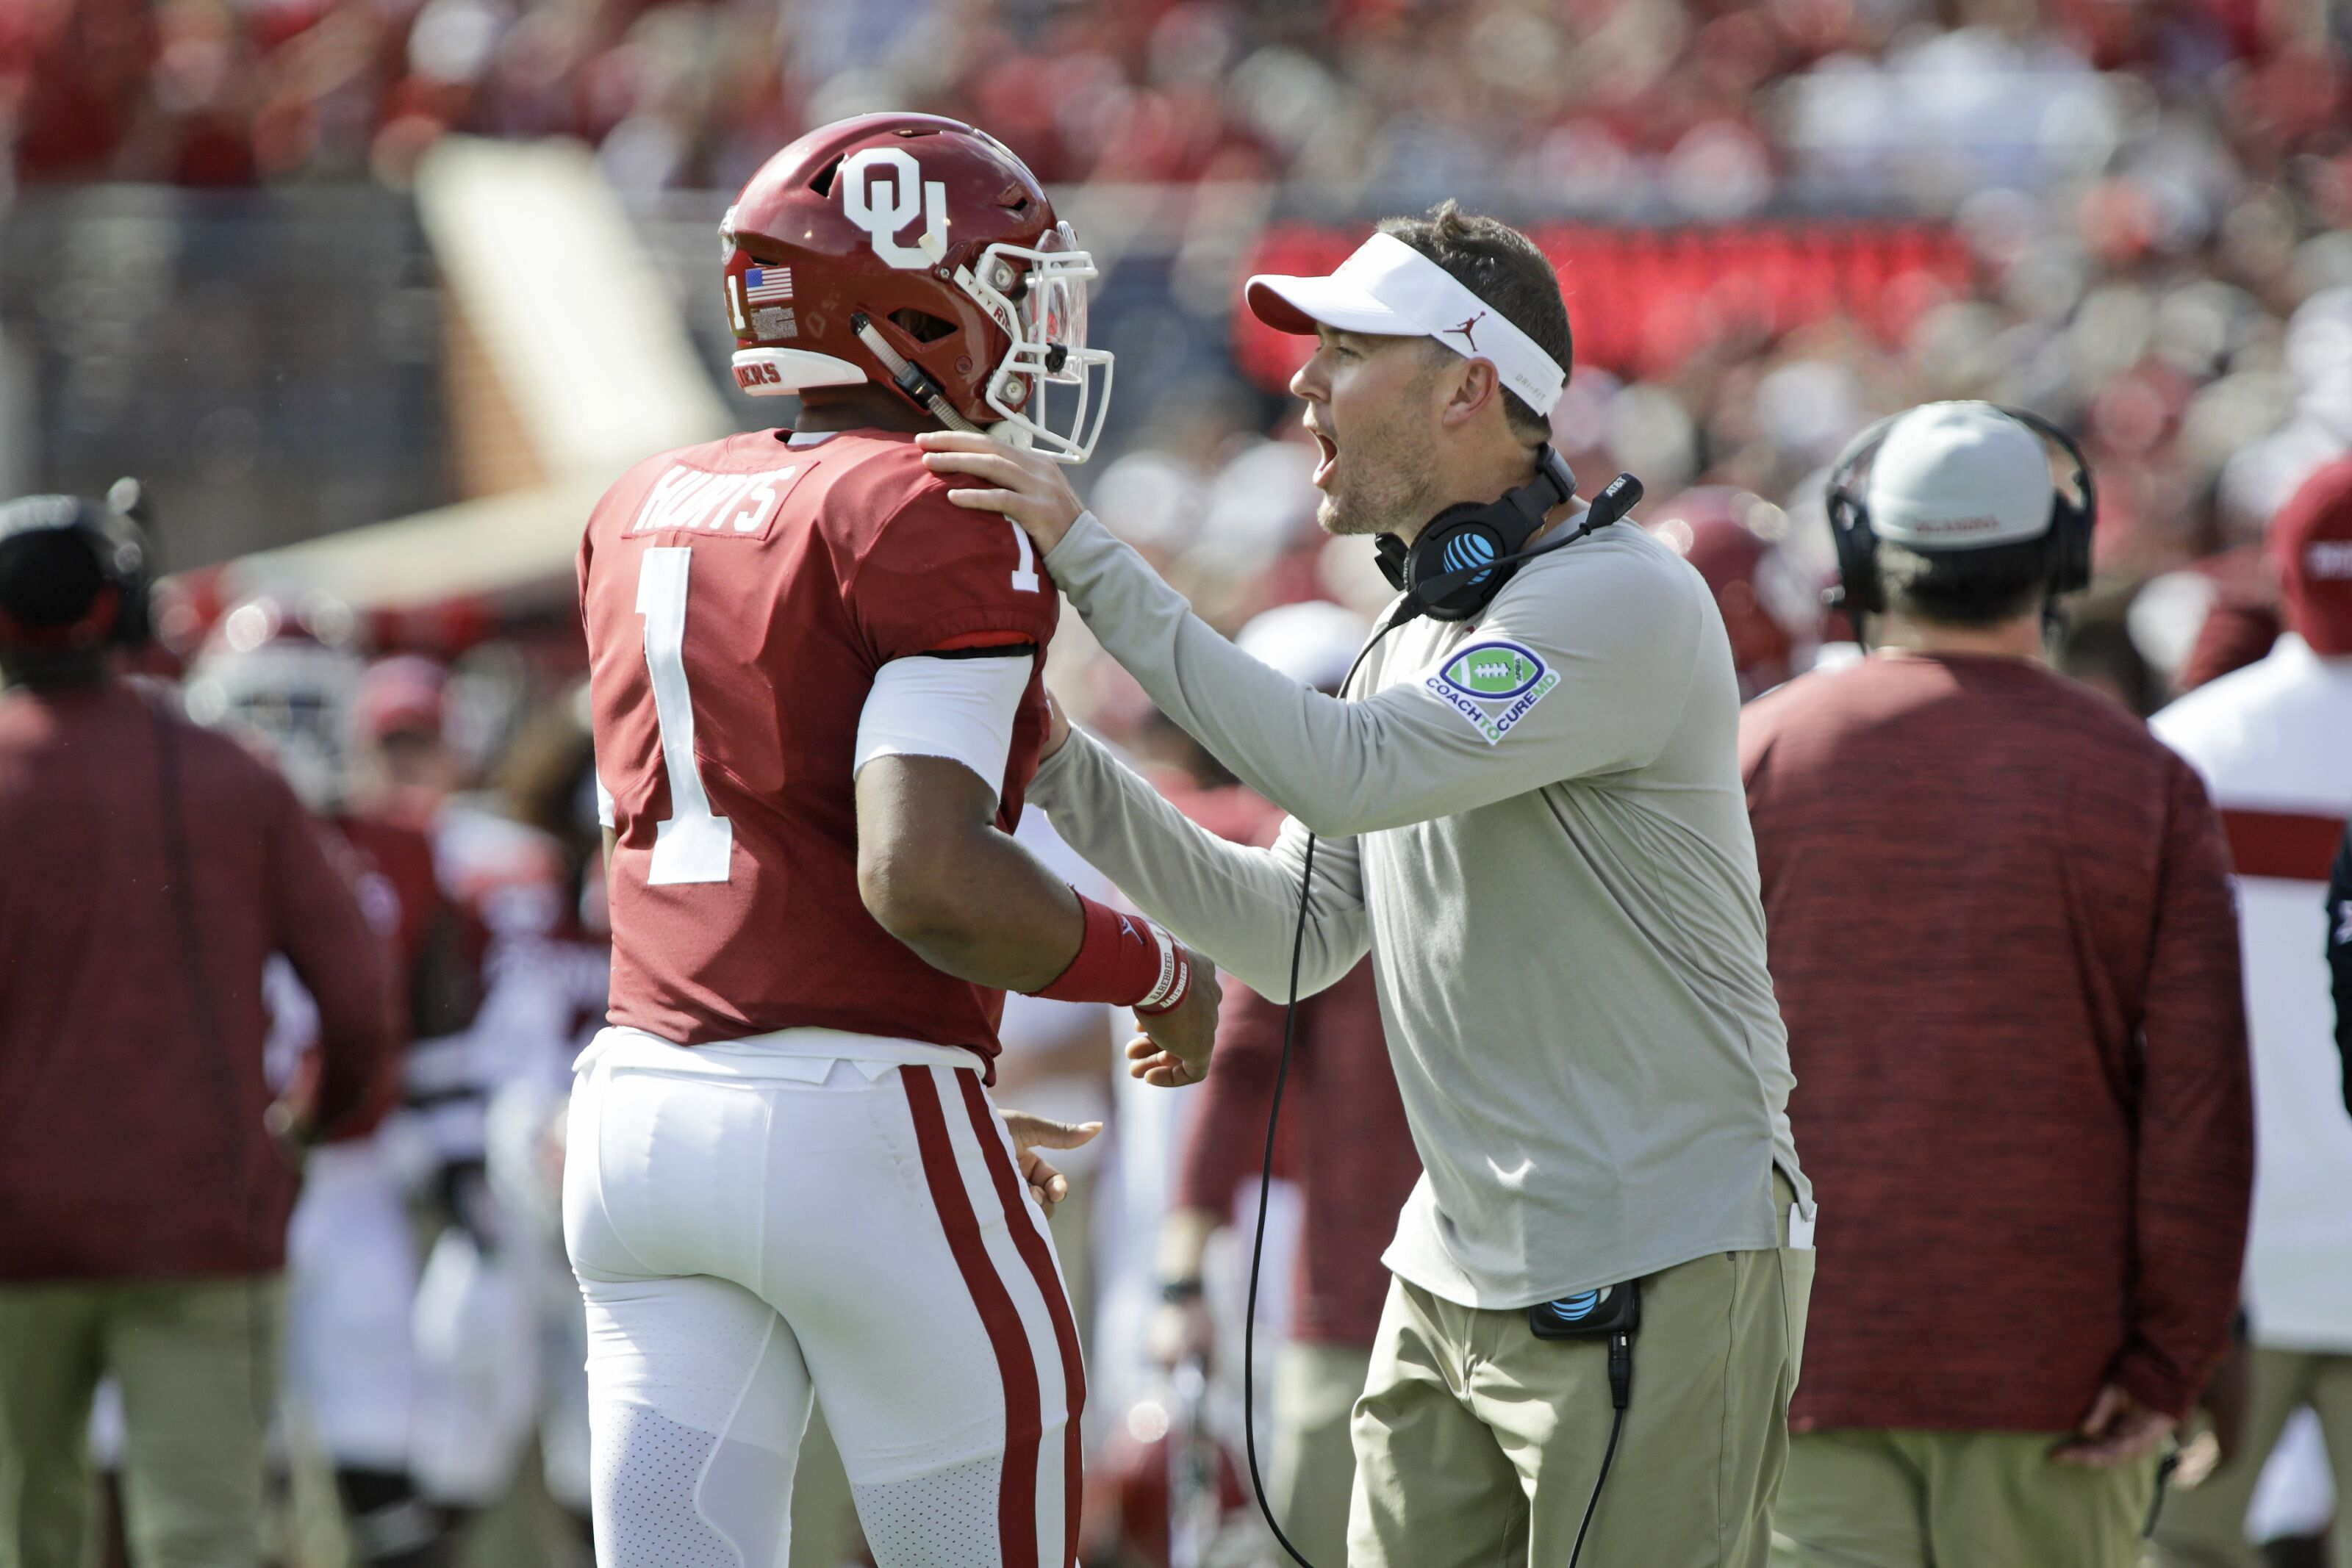 Lincoln Riley: 'The journey is just getting started'